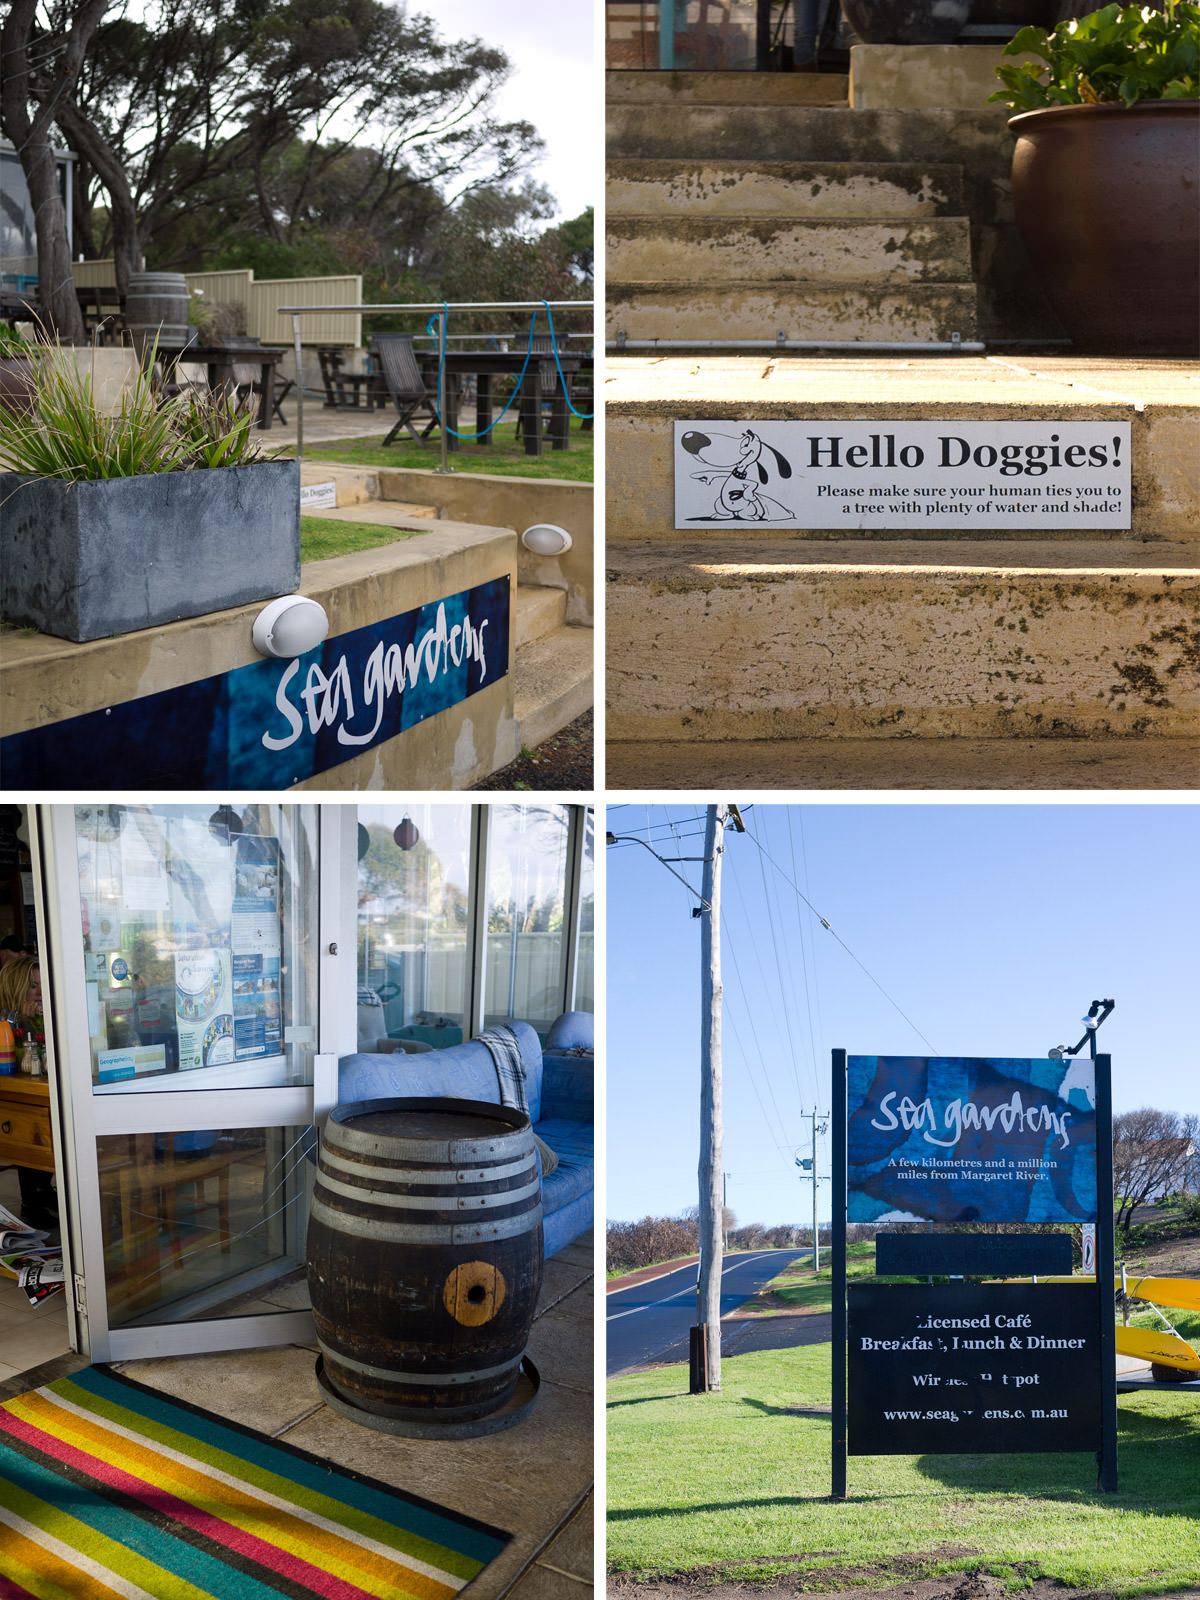 Sea Gardens - the stairs, entrance and roadside sign